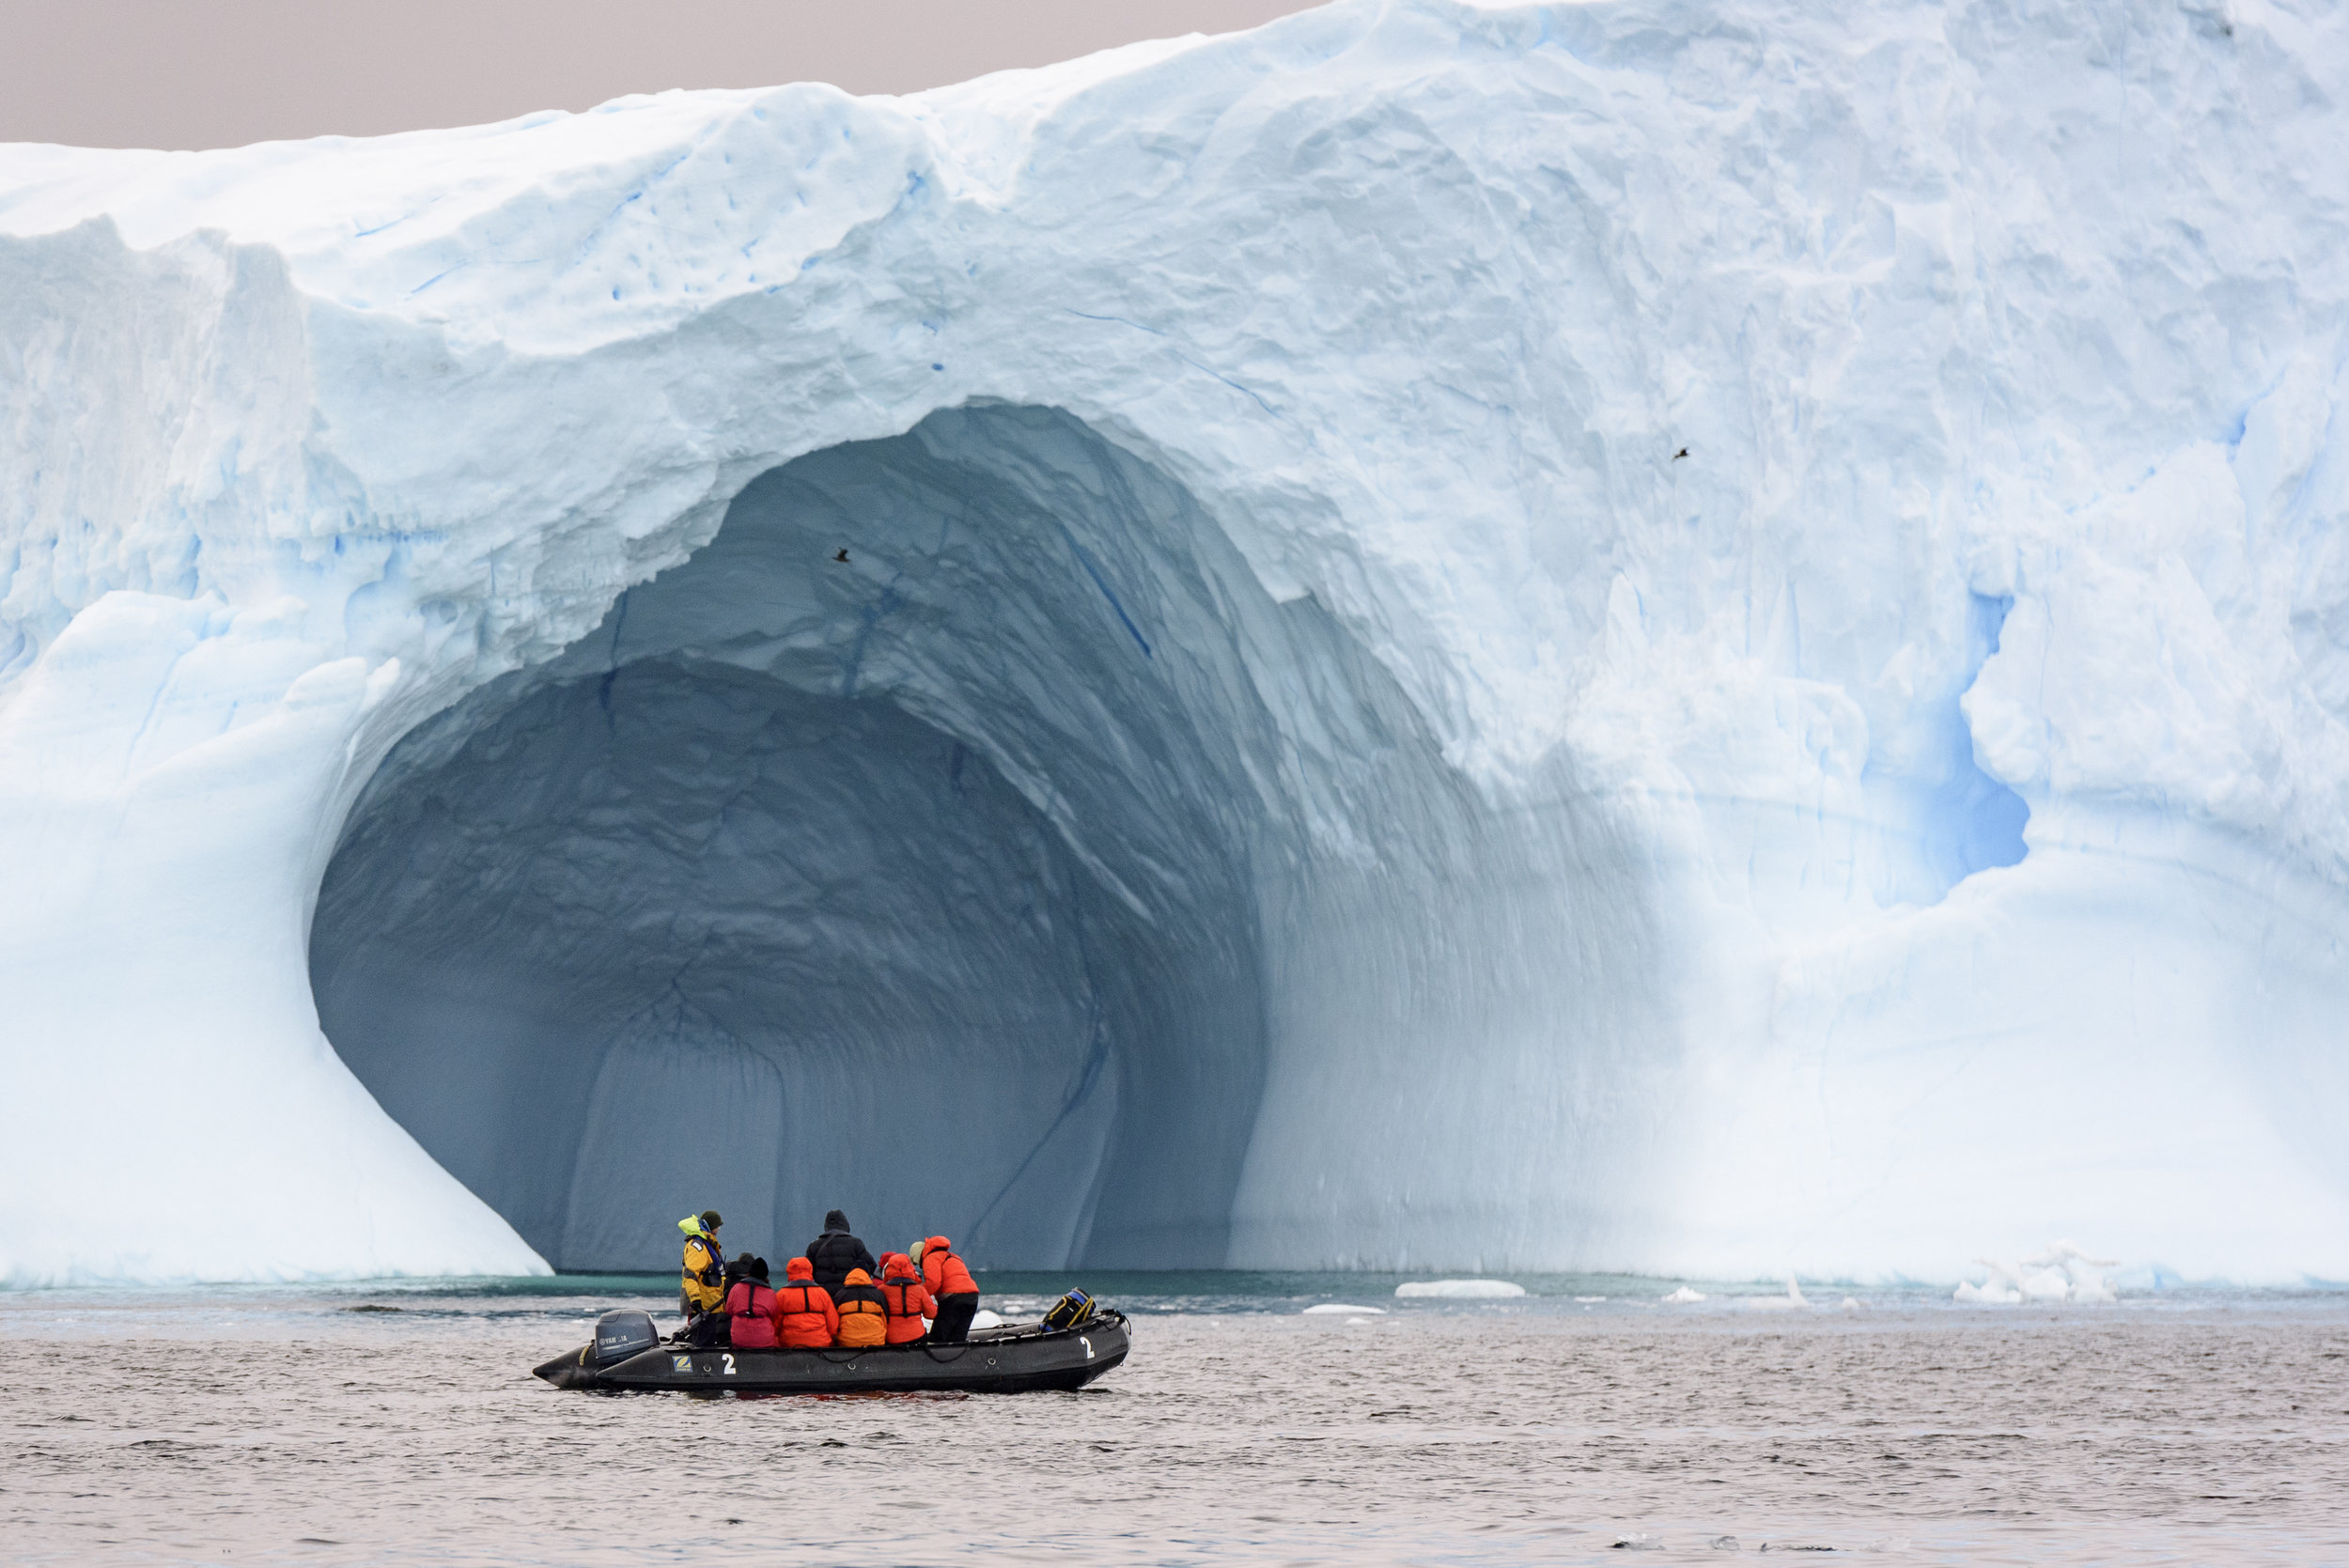 Passing by Ice Fjords in Antarctica